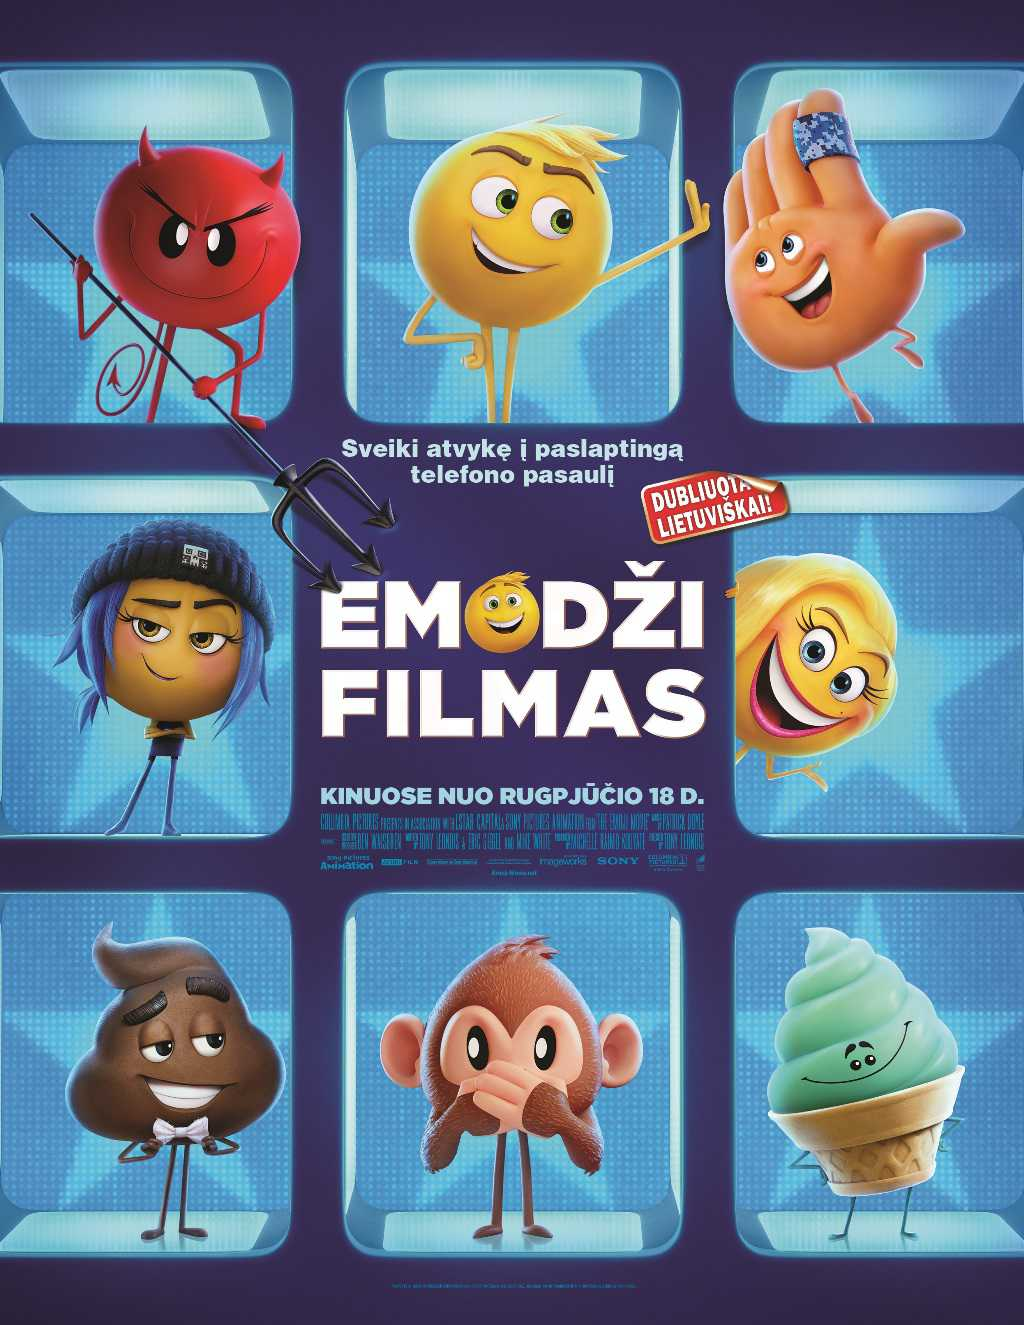 Emodži filmas (The Emoji Movie)